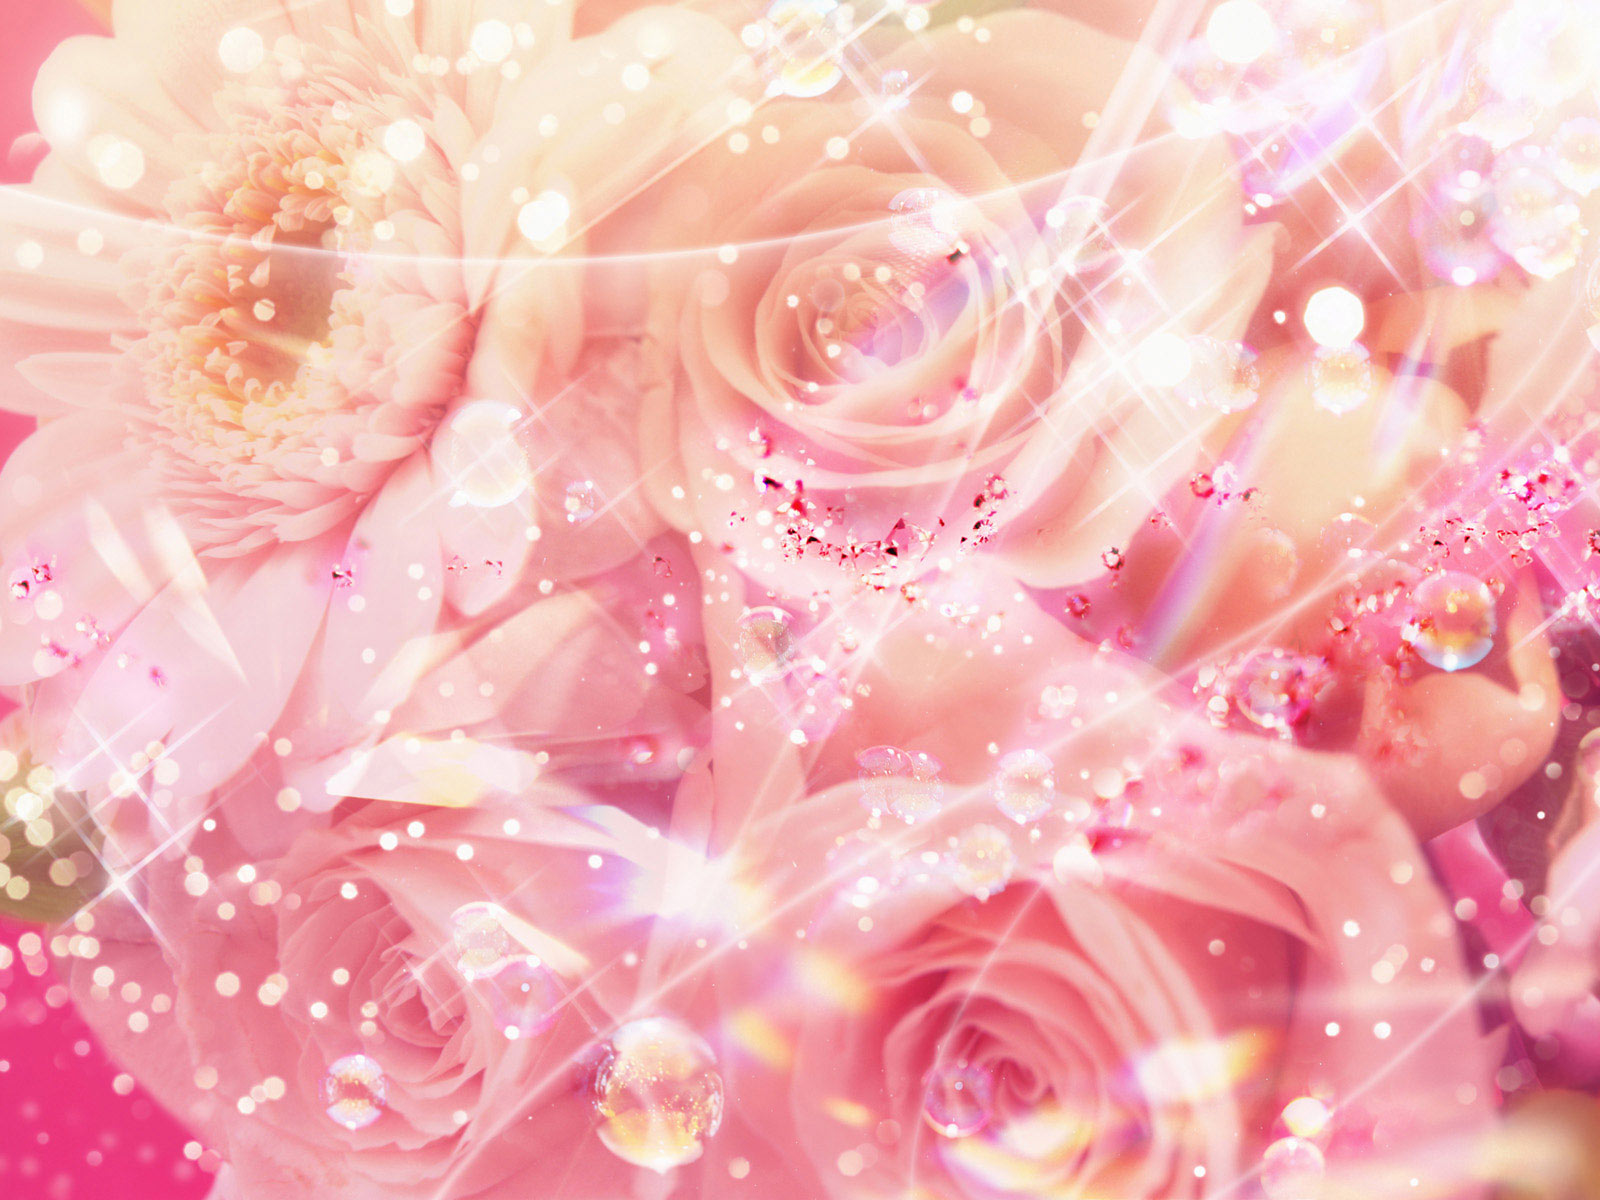 Pretty Pink Roses   Roses Wallpaper 34610926 1600x1200